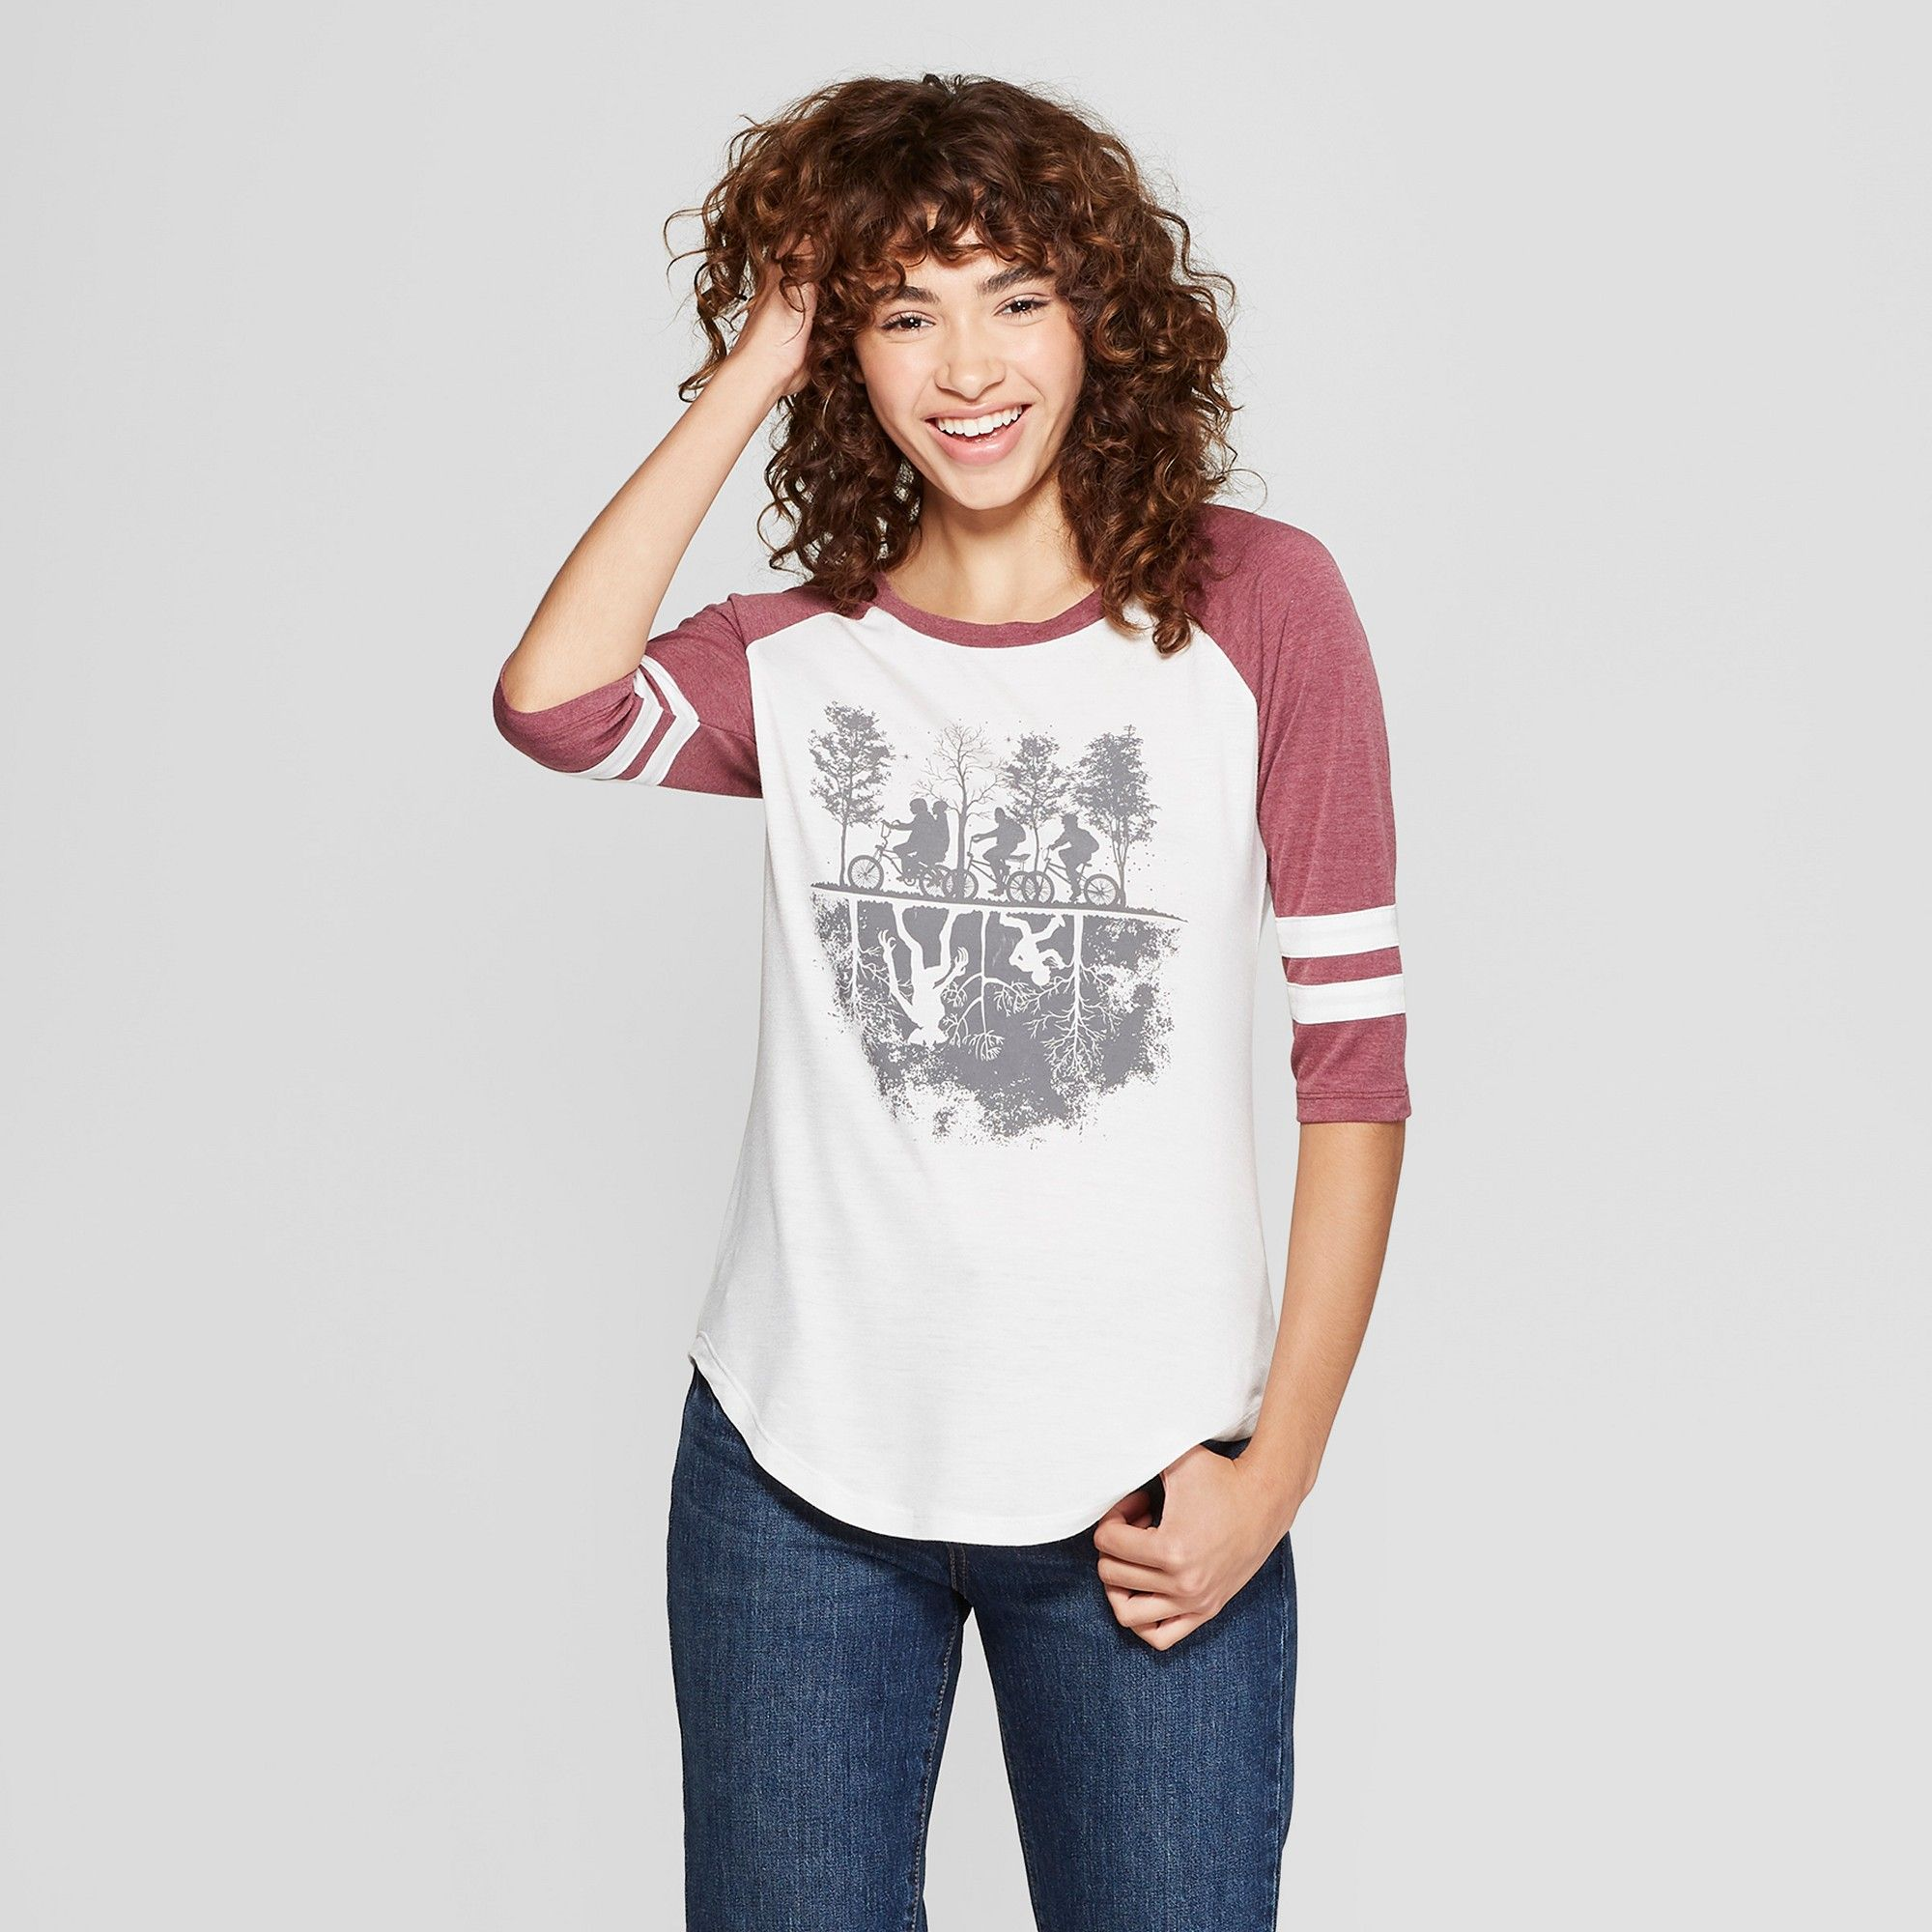 905fb564 Women's Stranger Things 3/4 Sleeve Upside Down Raglan Graphic T-Shirt ( Juniors') Burgundy M, White